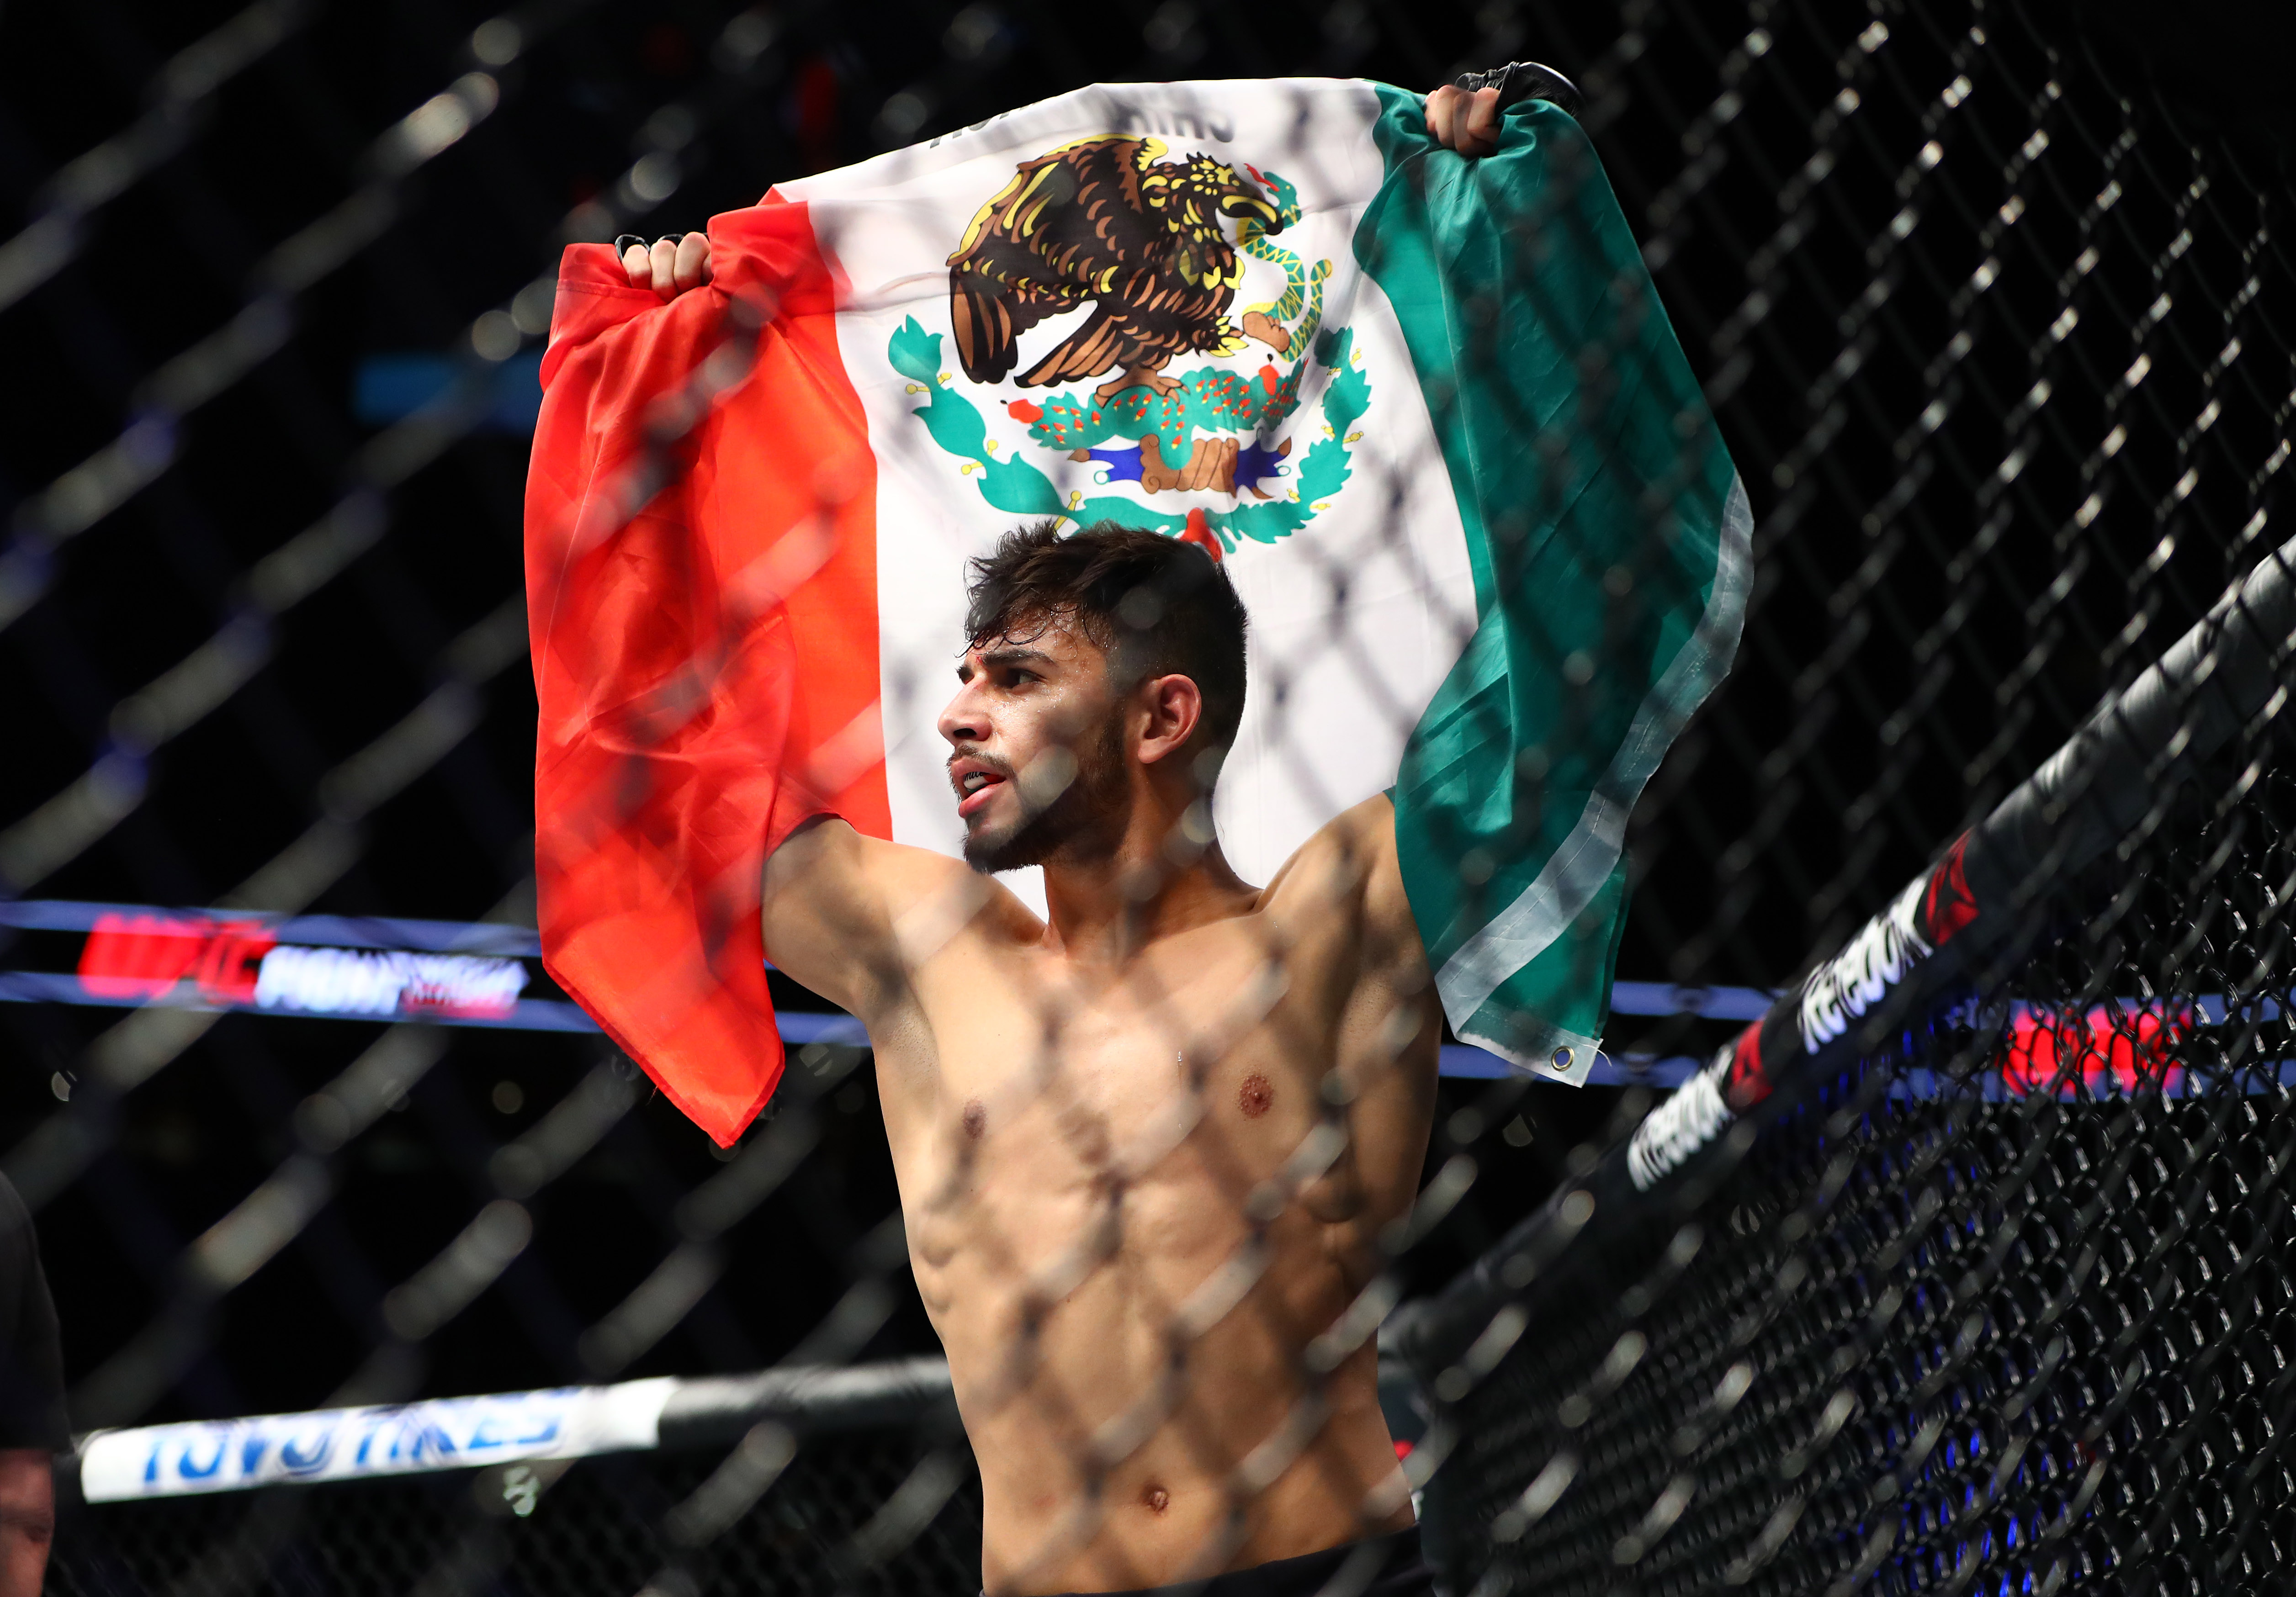 Jan 15, 2017; Phoenix, AZ, USA; Yair Rodriguez holds a Mexico flag as he celebrates his TKO of B.J. Penn (not pictured) during UFC Fight Night at Talking Stick Resort Arena. Mandatory Credit: Mark J. Rebilas-USA TODAY Sports